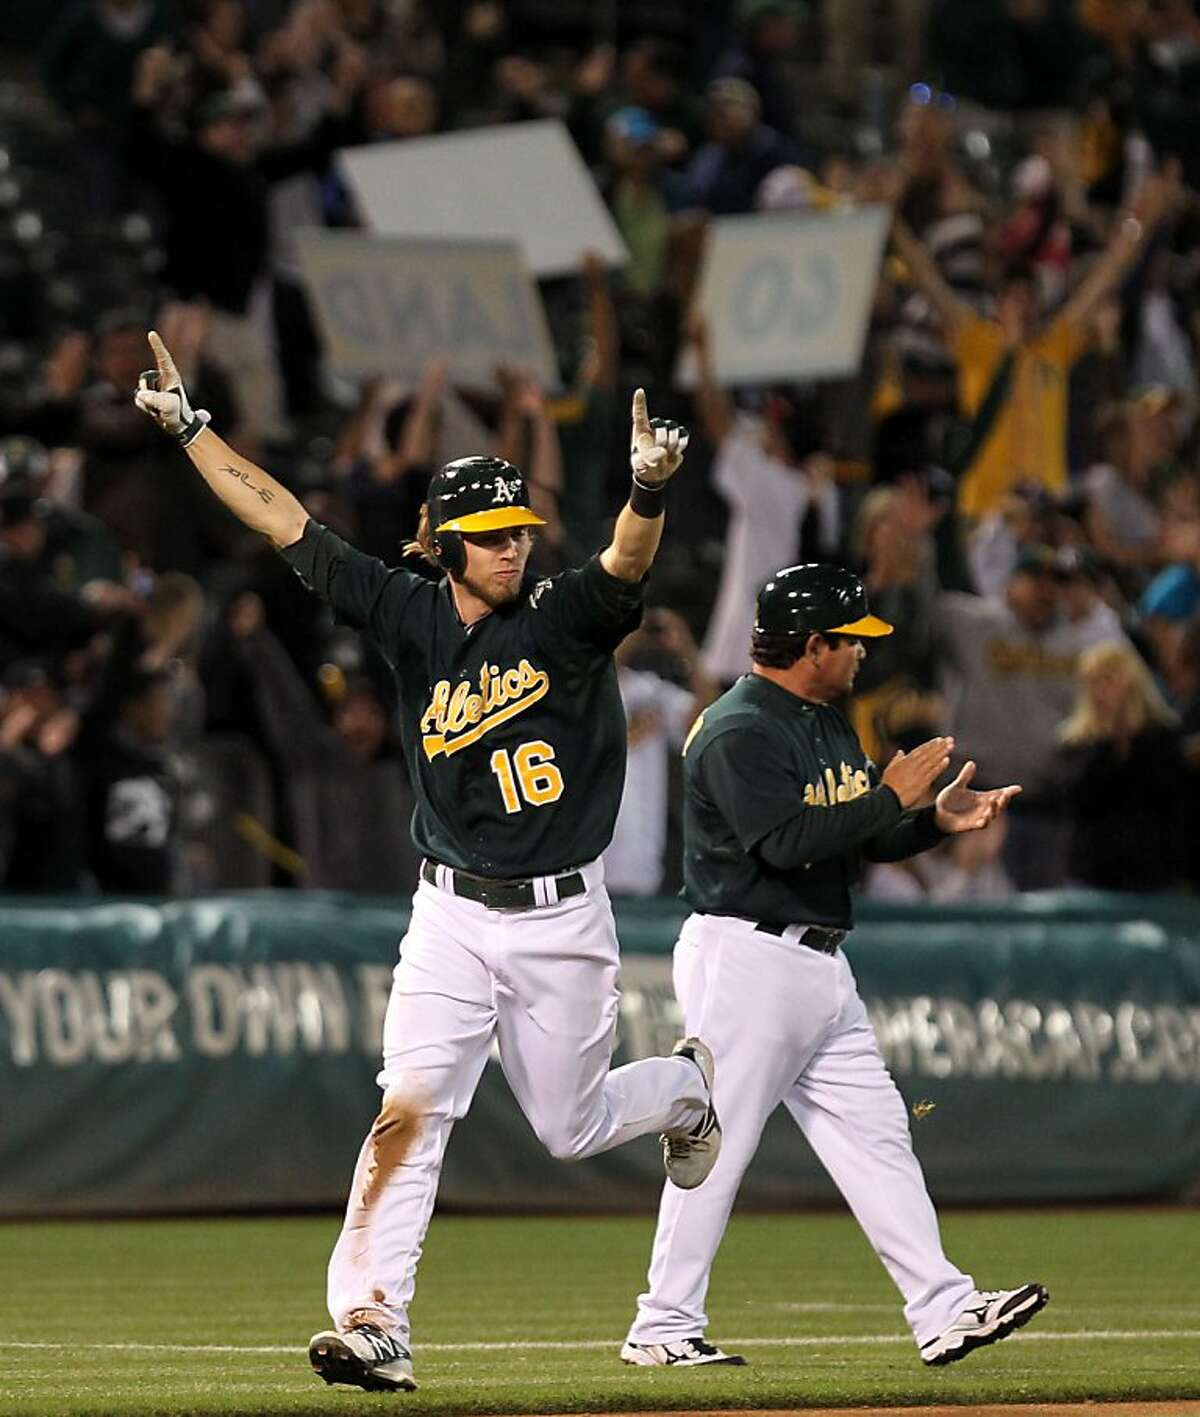 Oakland Athletics Josh Reddick scores off a Chris Carter three run home run in the bottom of the 11th inning to defeat the Seattle Mariners in their MLB baseball game 4-1 Friday, July 6, 2012, in Oakland California.